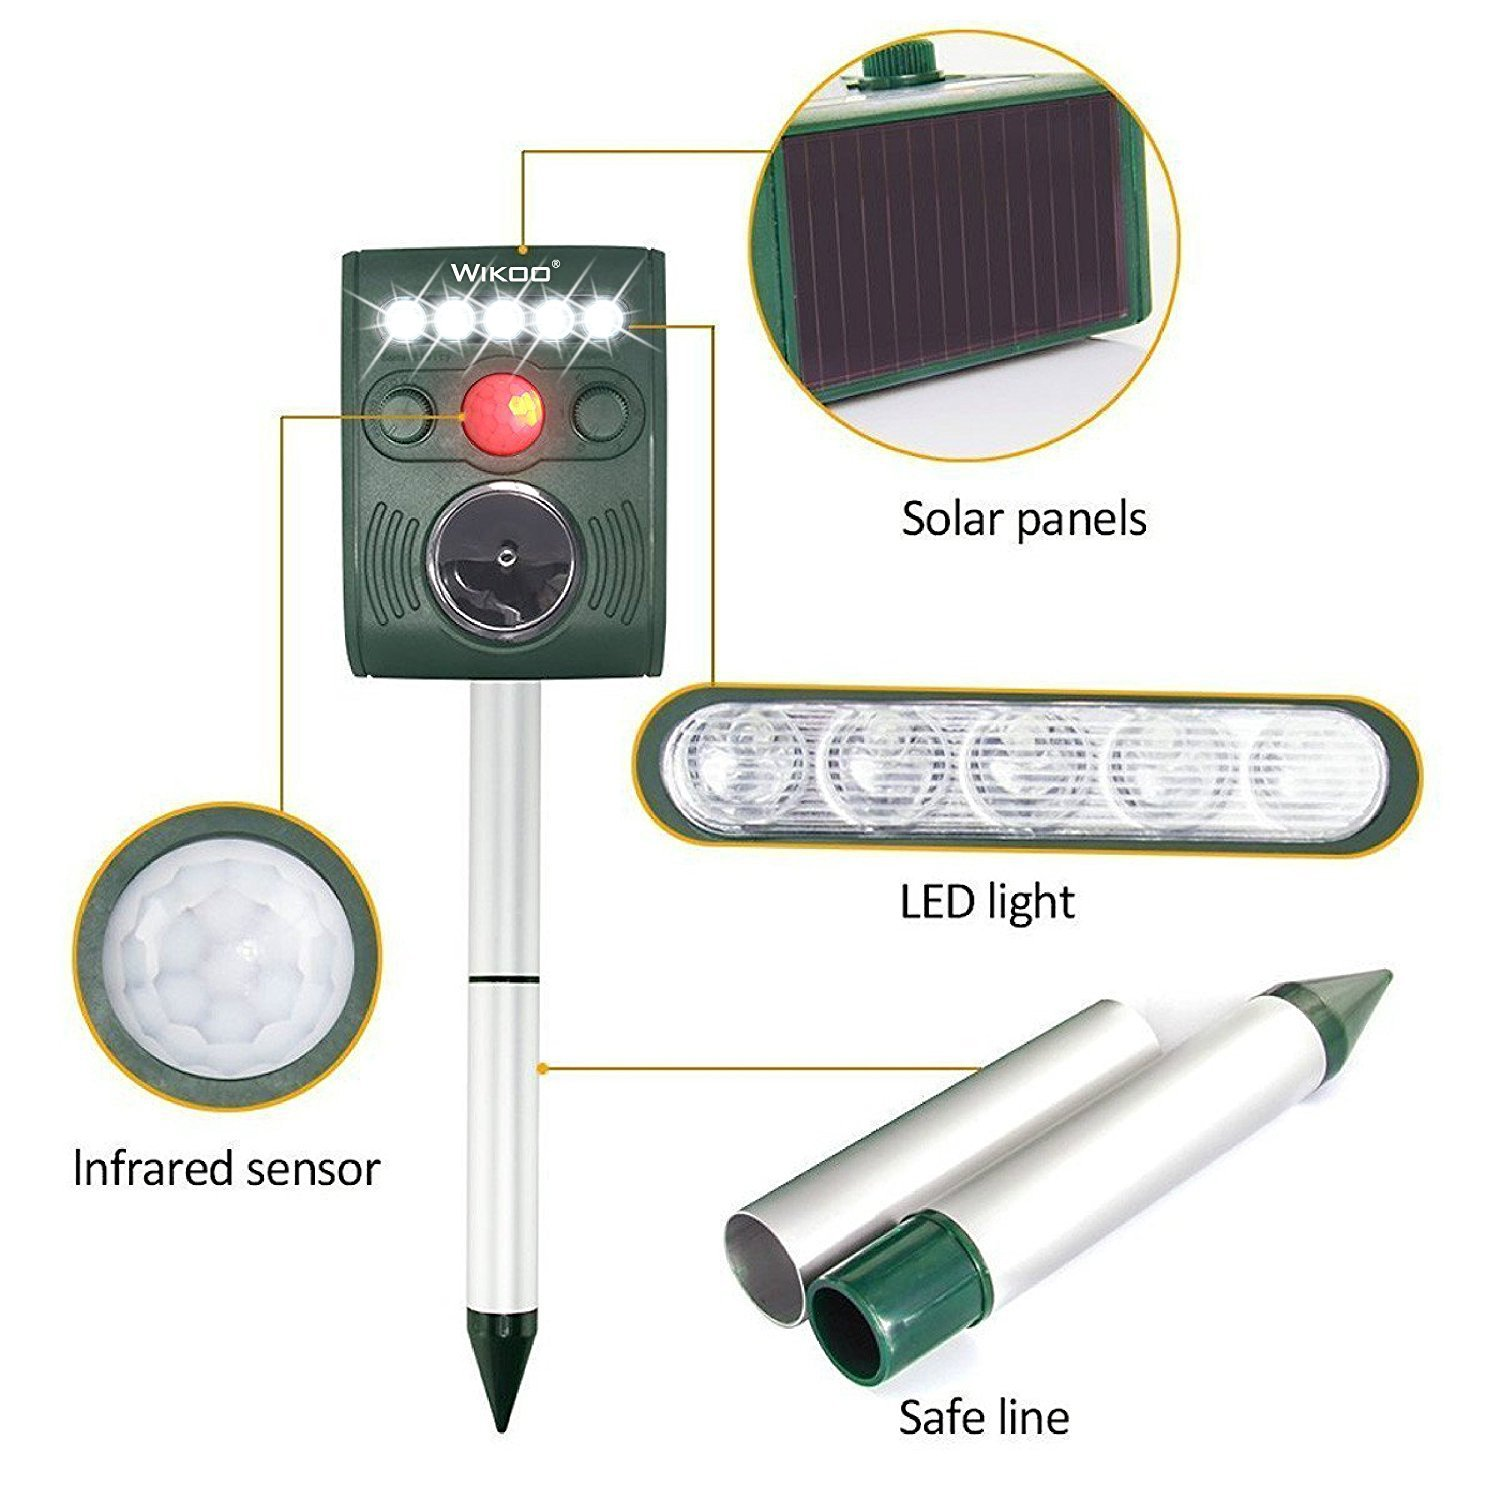 Amazon.com : Ultrasonic Solar Animal & Pest Repeller, Wikoo Waterproof Repellent, Pest Control for Dogs, Foxes, Birds, Skunks, rodents etc, Motion Activated ...